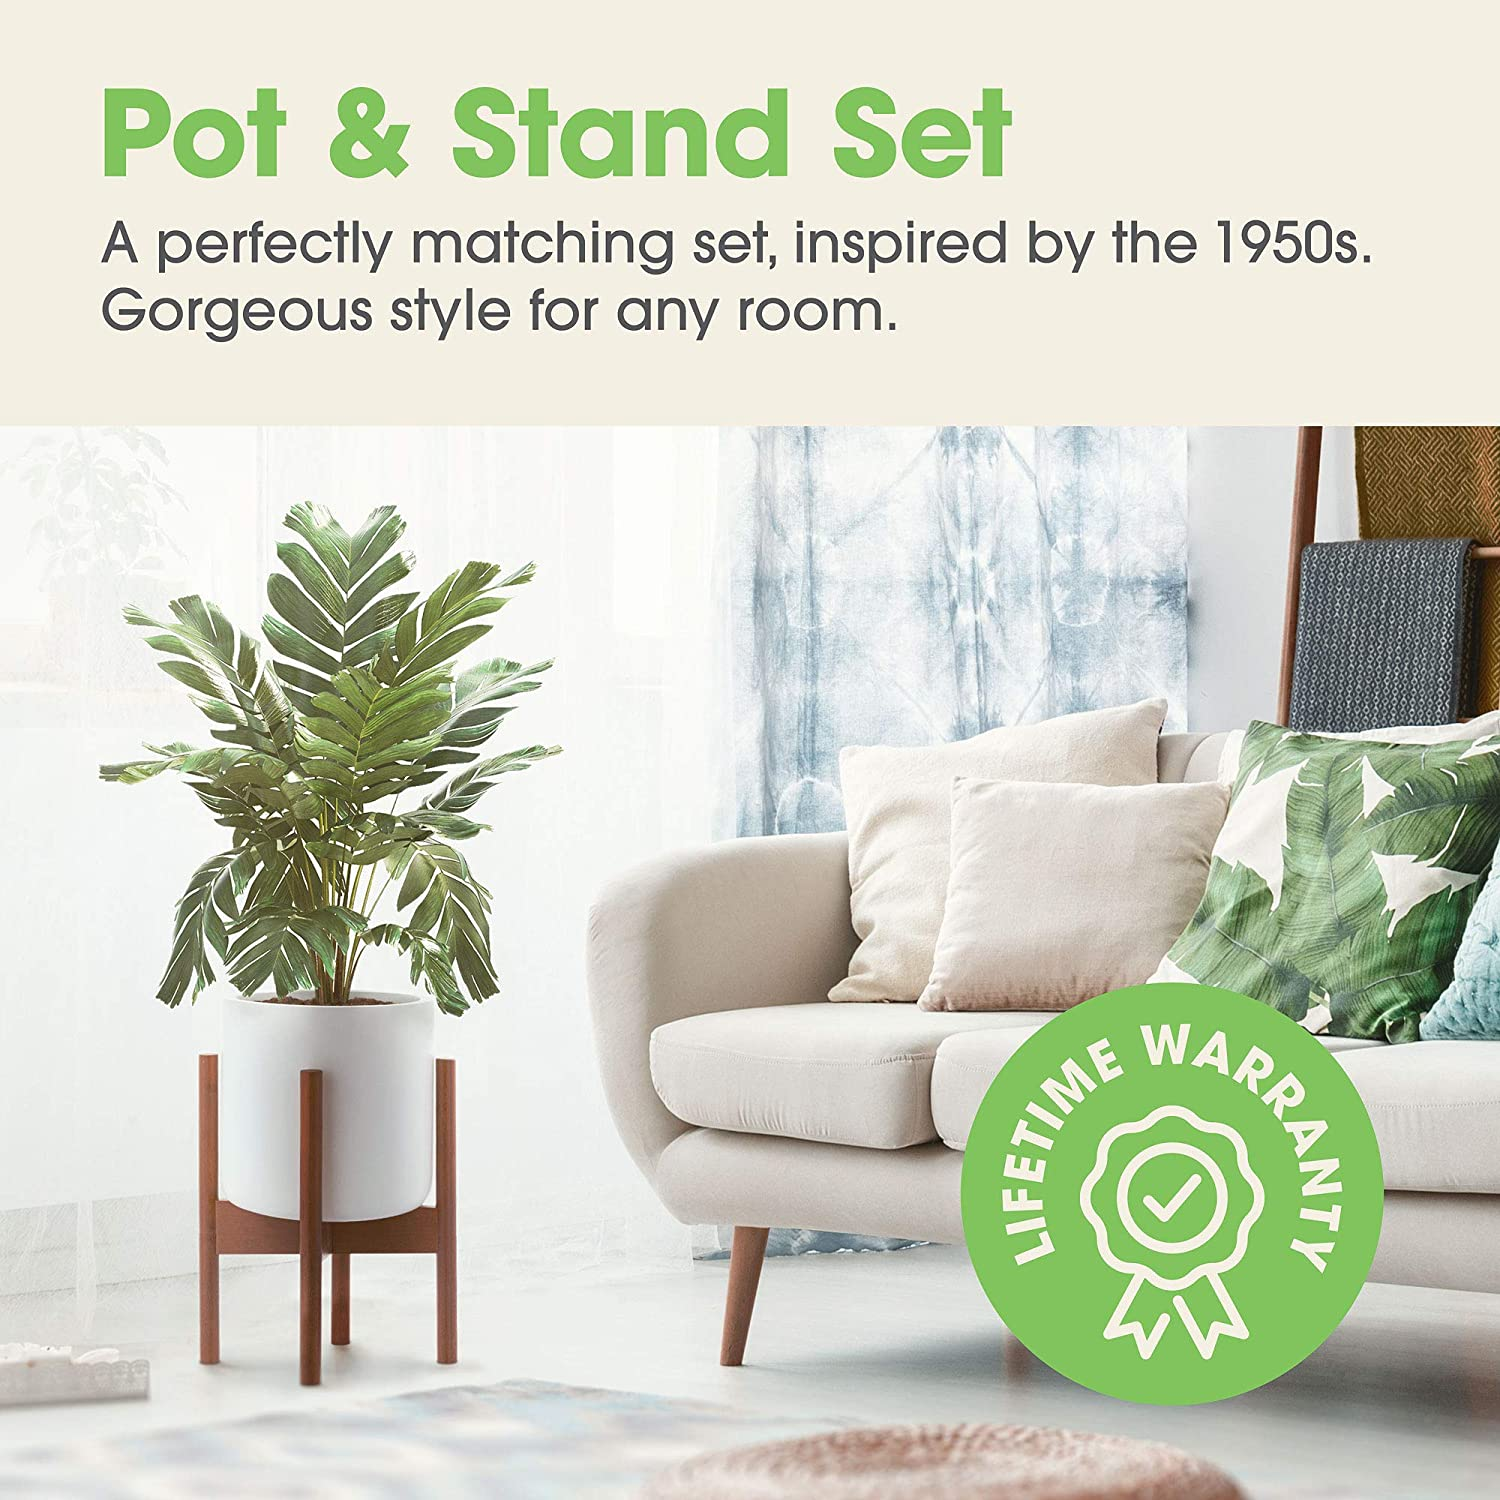 10 Inch Flower Pot Modern Indoor Planter with Stand Decor EdenHomes Mid Century Modern Plant Stand with Pot Set White Plant Pot with 14 Inch Tall Plant Holder